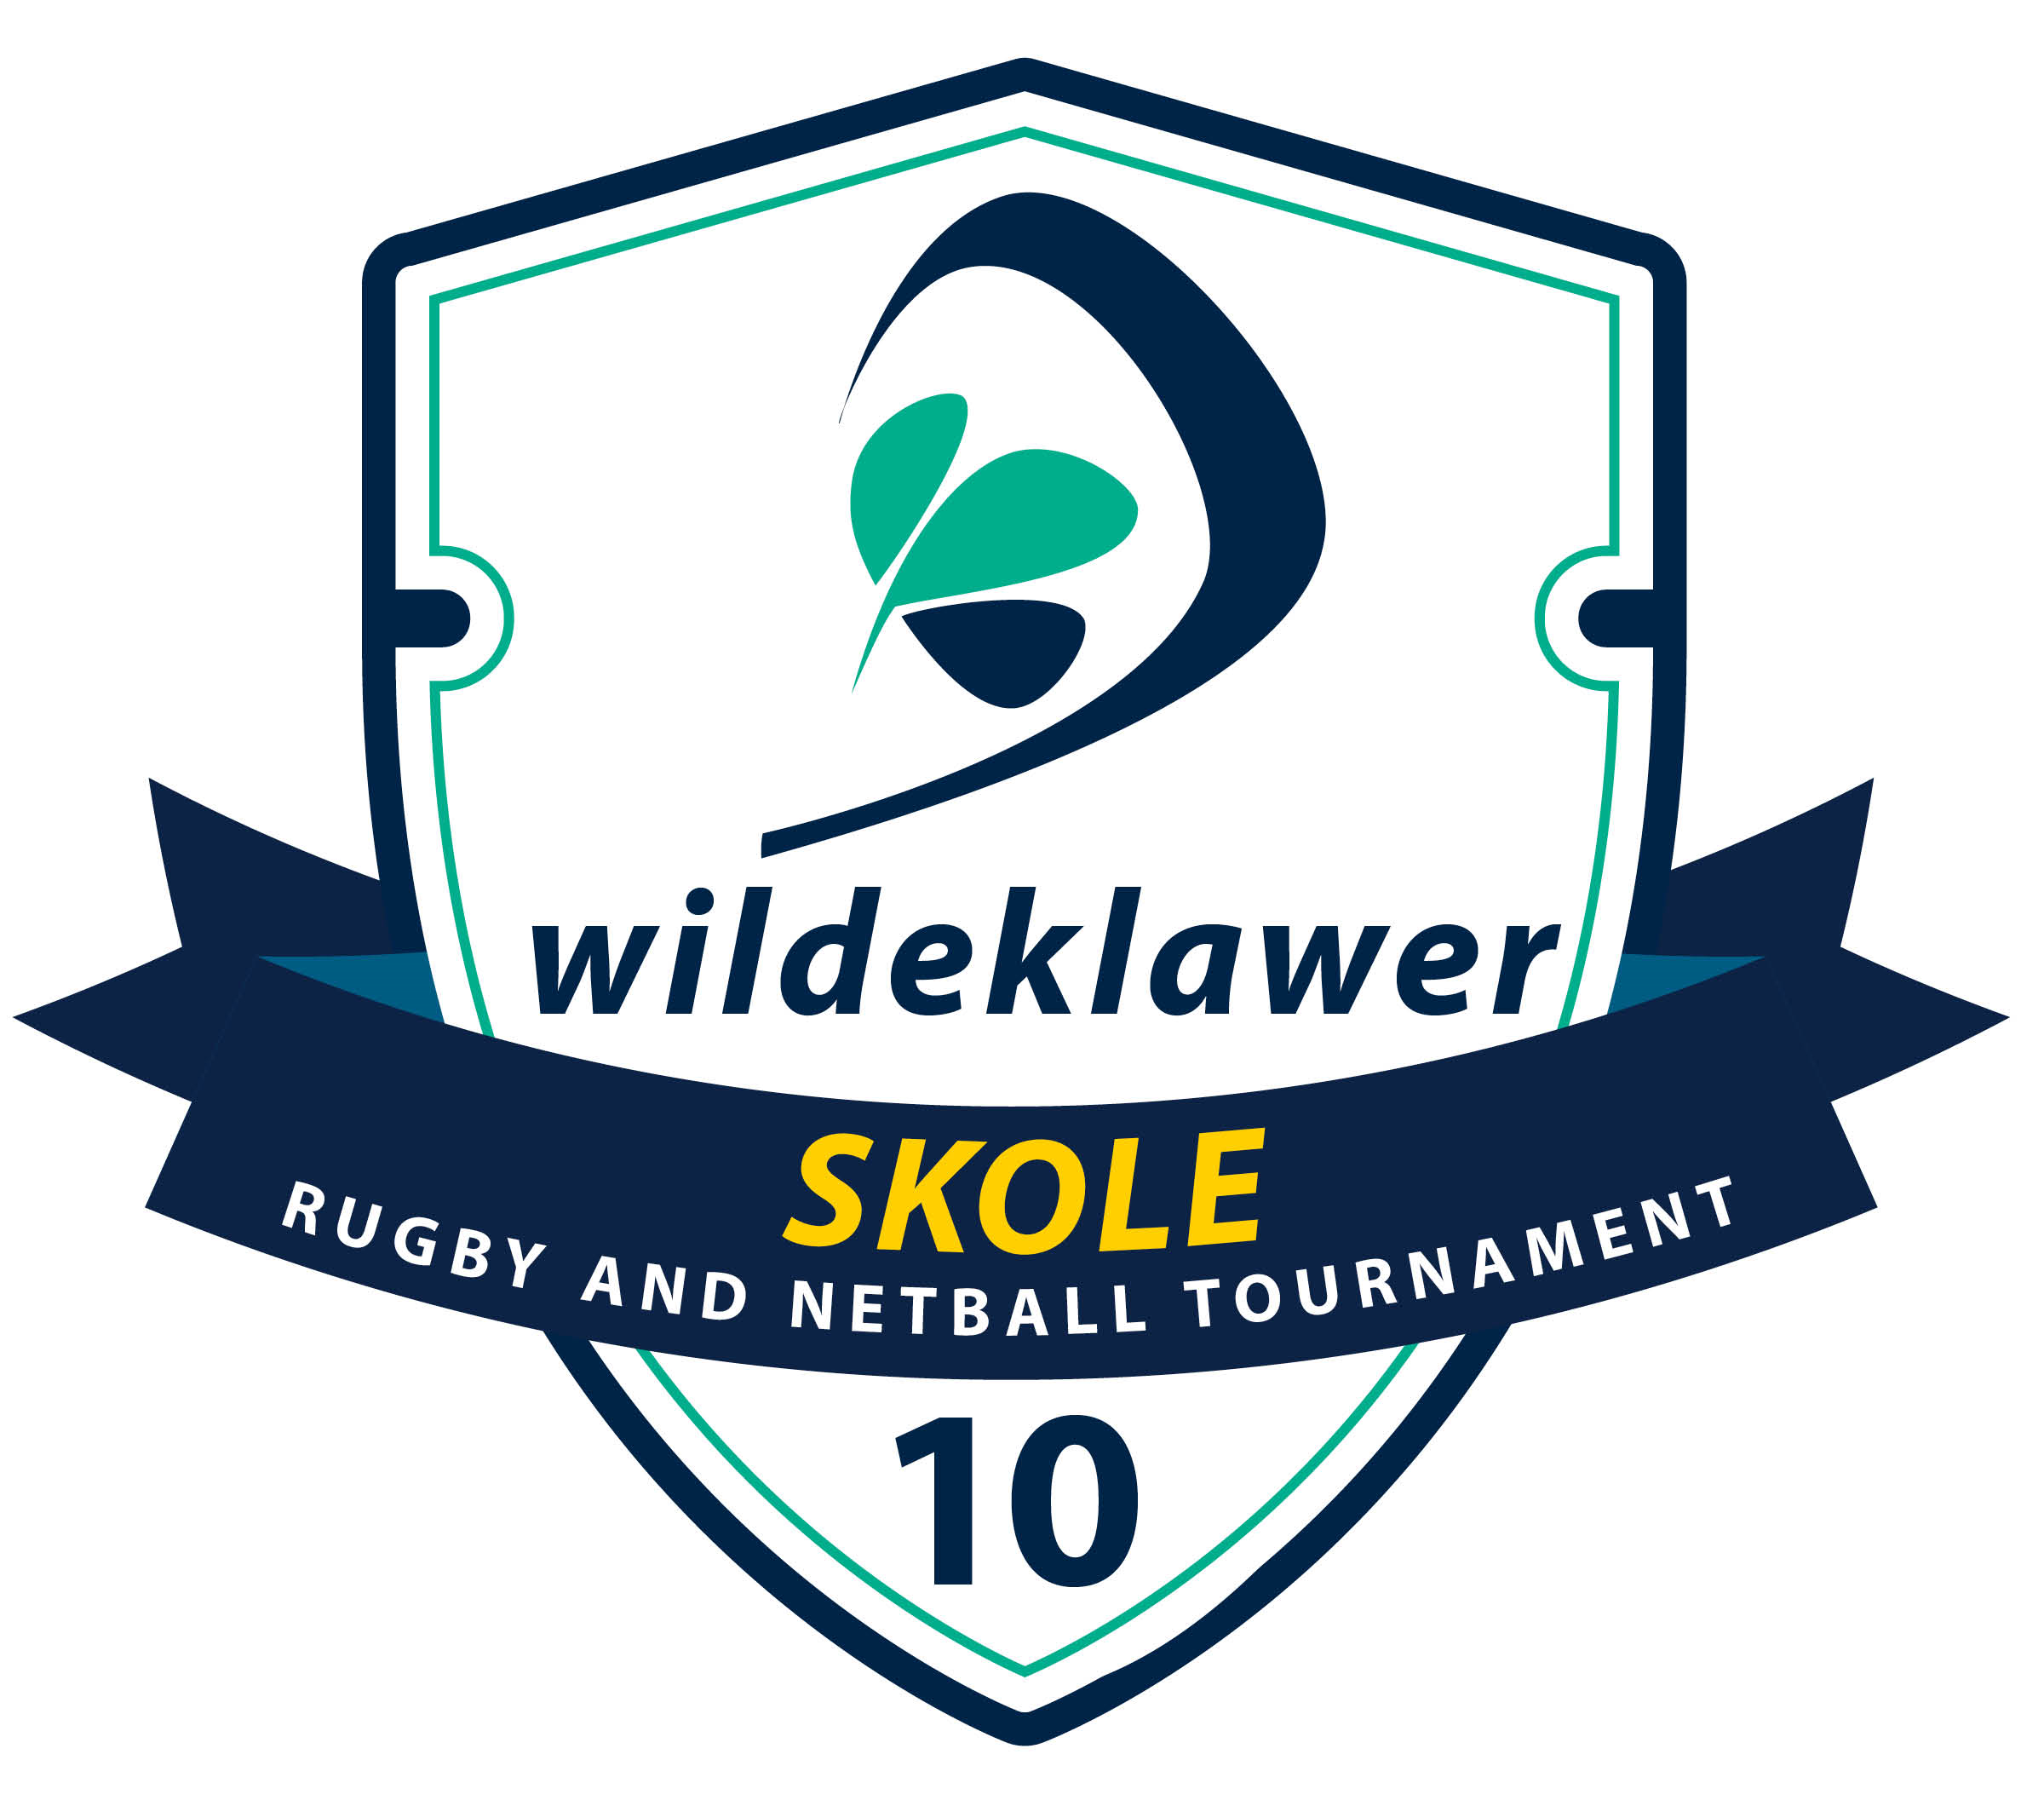 Wildeklawer10logo